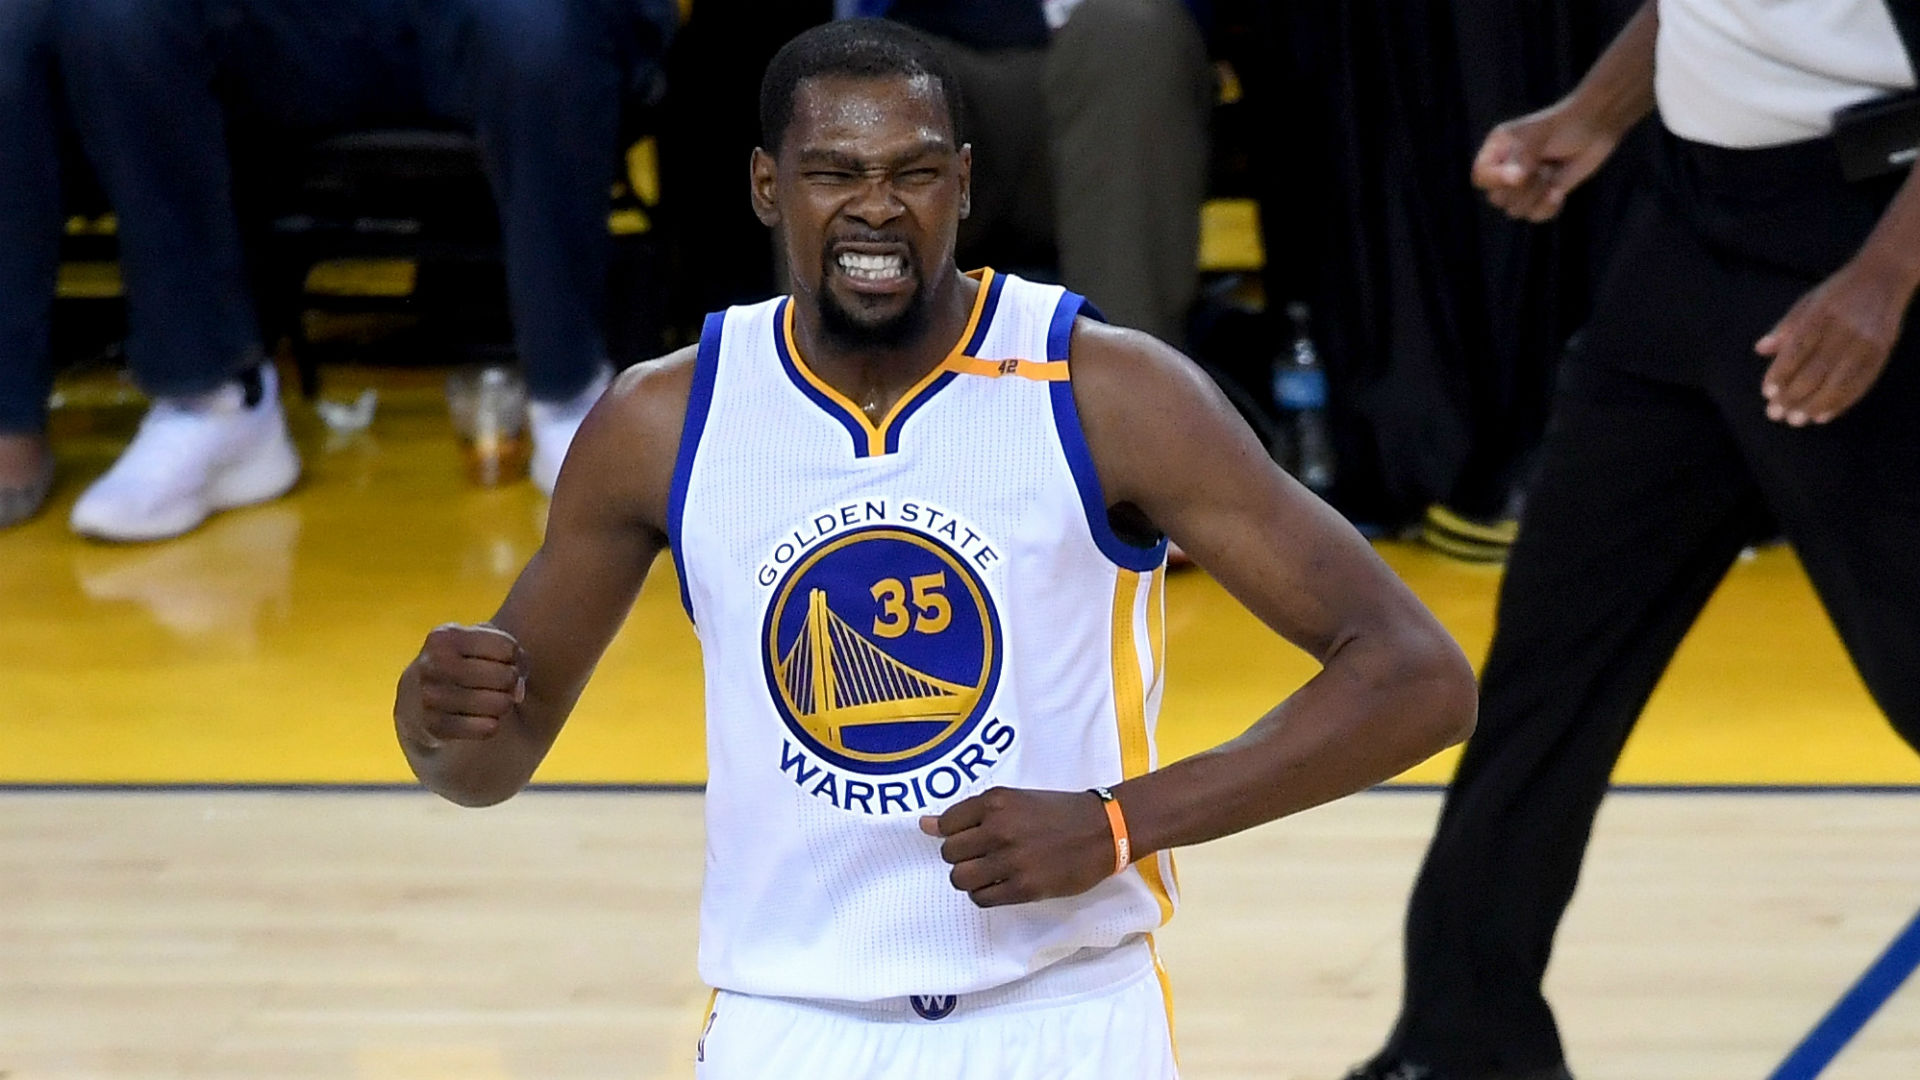 Warriors Steve Kerr Kevin Durant Taking Pay Cut Was Remarkable